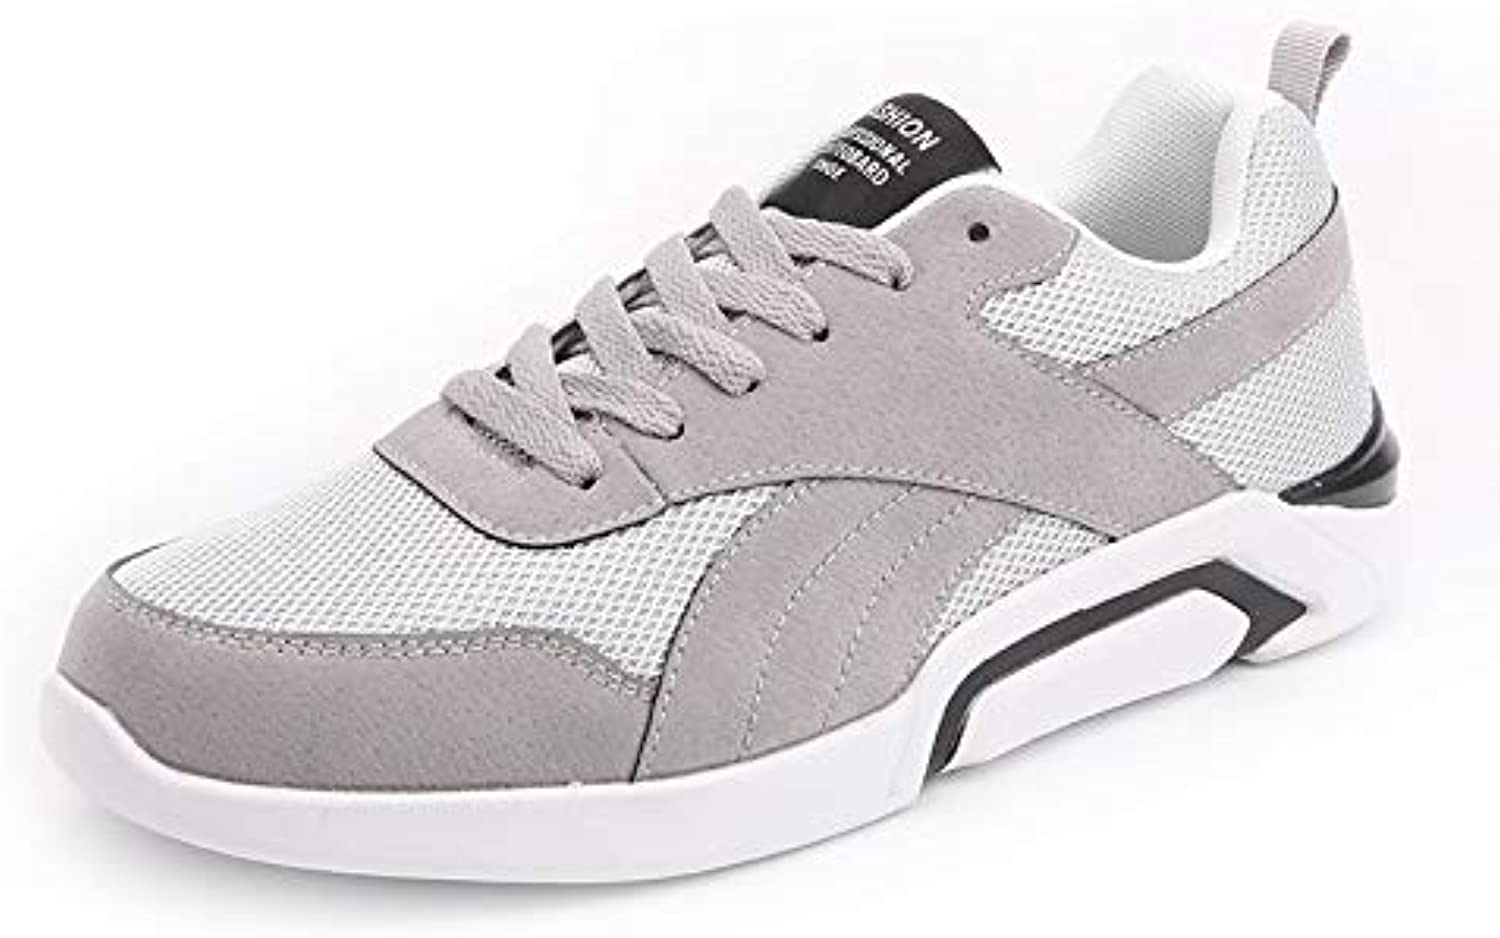 WDDGPZYDX Casual shoes Men Breathable Autumn Summers Mesh shoes Brands shoes fashion Non-slip Comfortable Superstar Sneakers